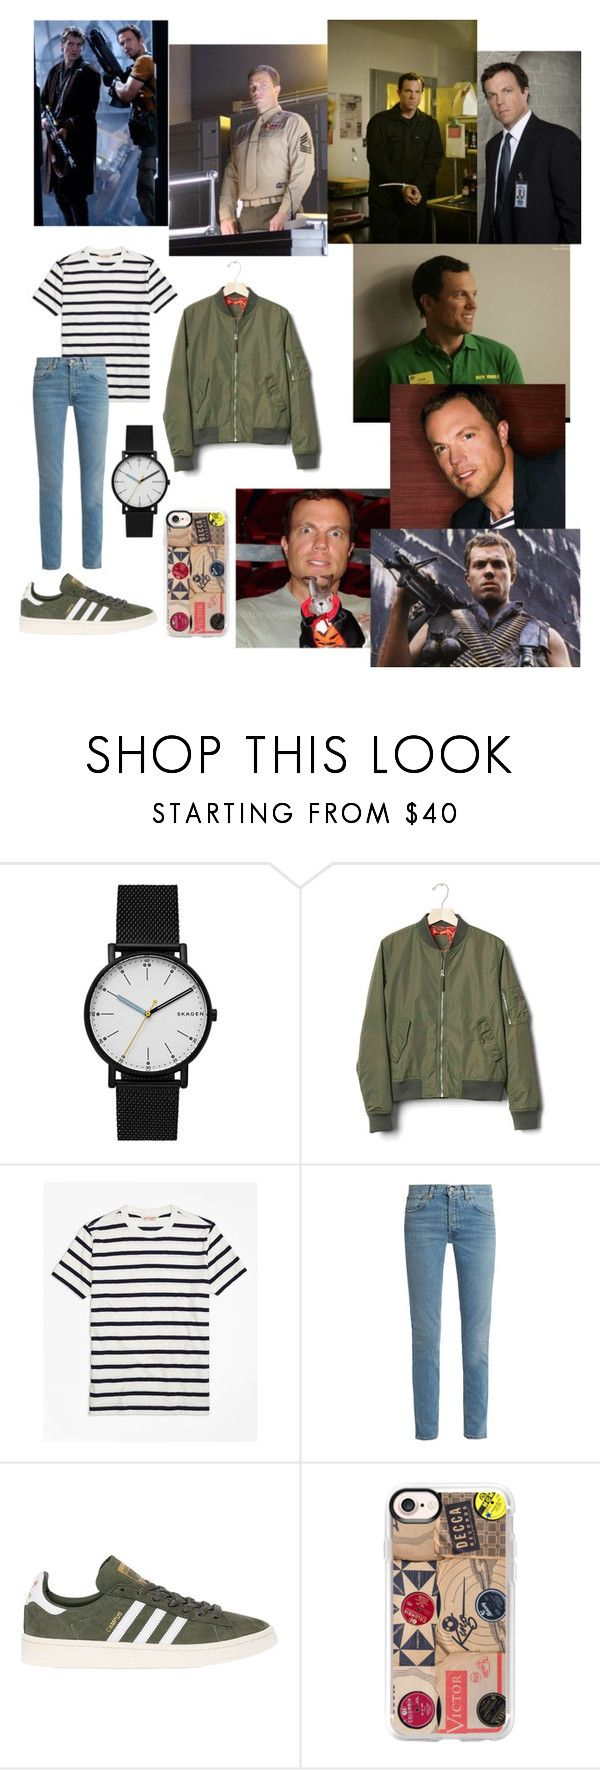 """""""Literally Just Because I Love Adam Baldwin"""" by avengersfreak ❤ liked on Polyvore featuring ADAM, Skagen, Gap, Brooks Brothers, RE/DONE, adidas Originals and Casetify"""